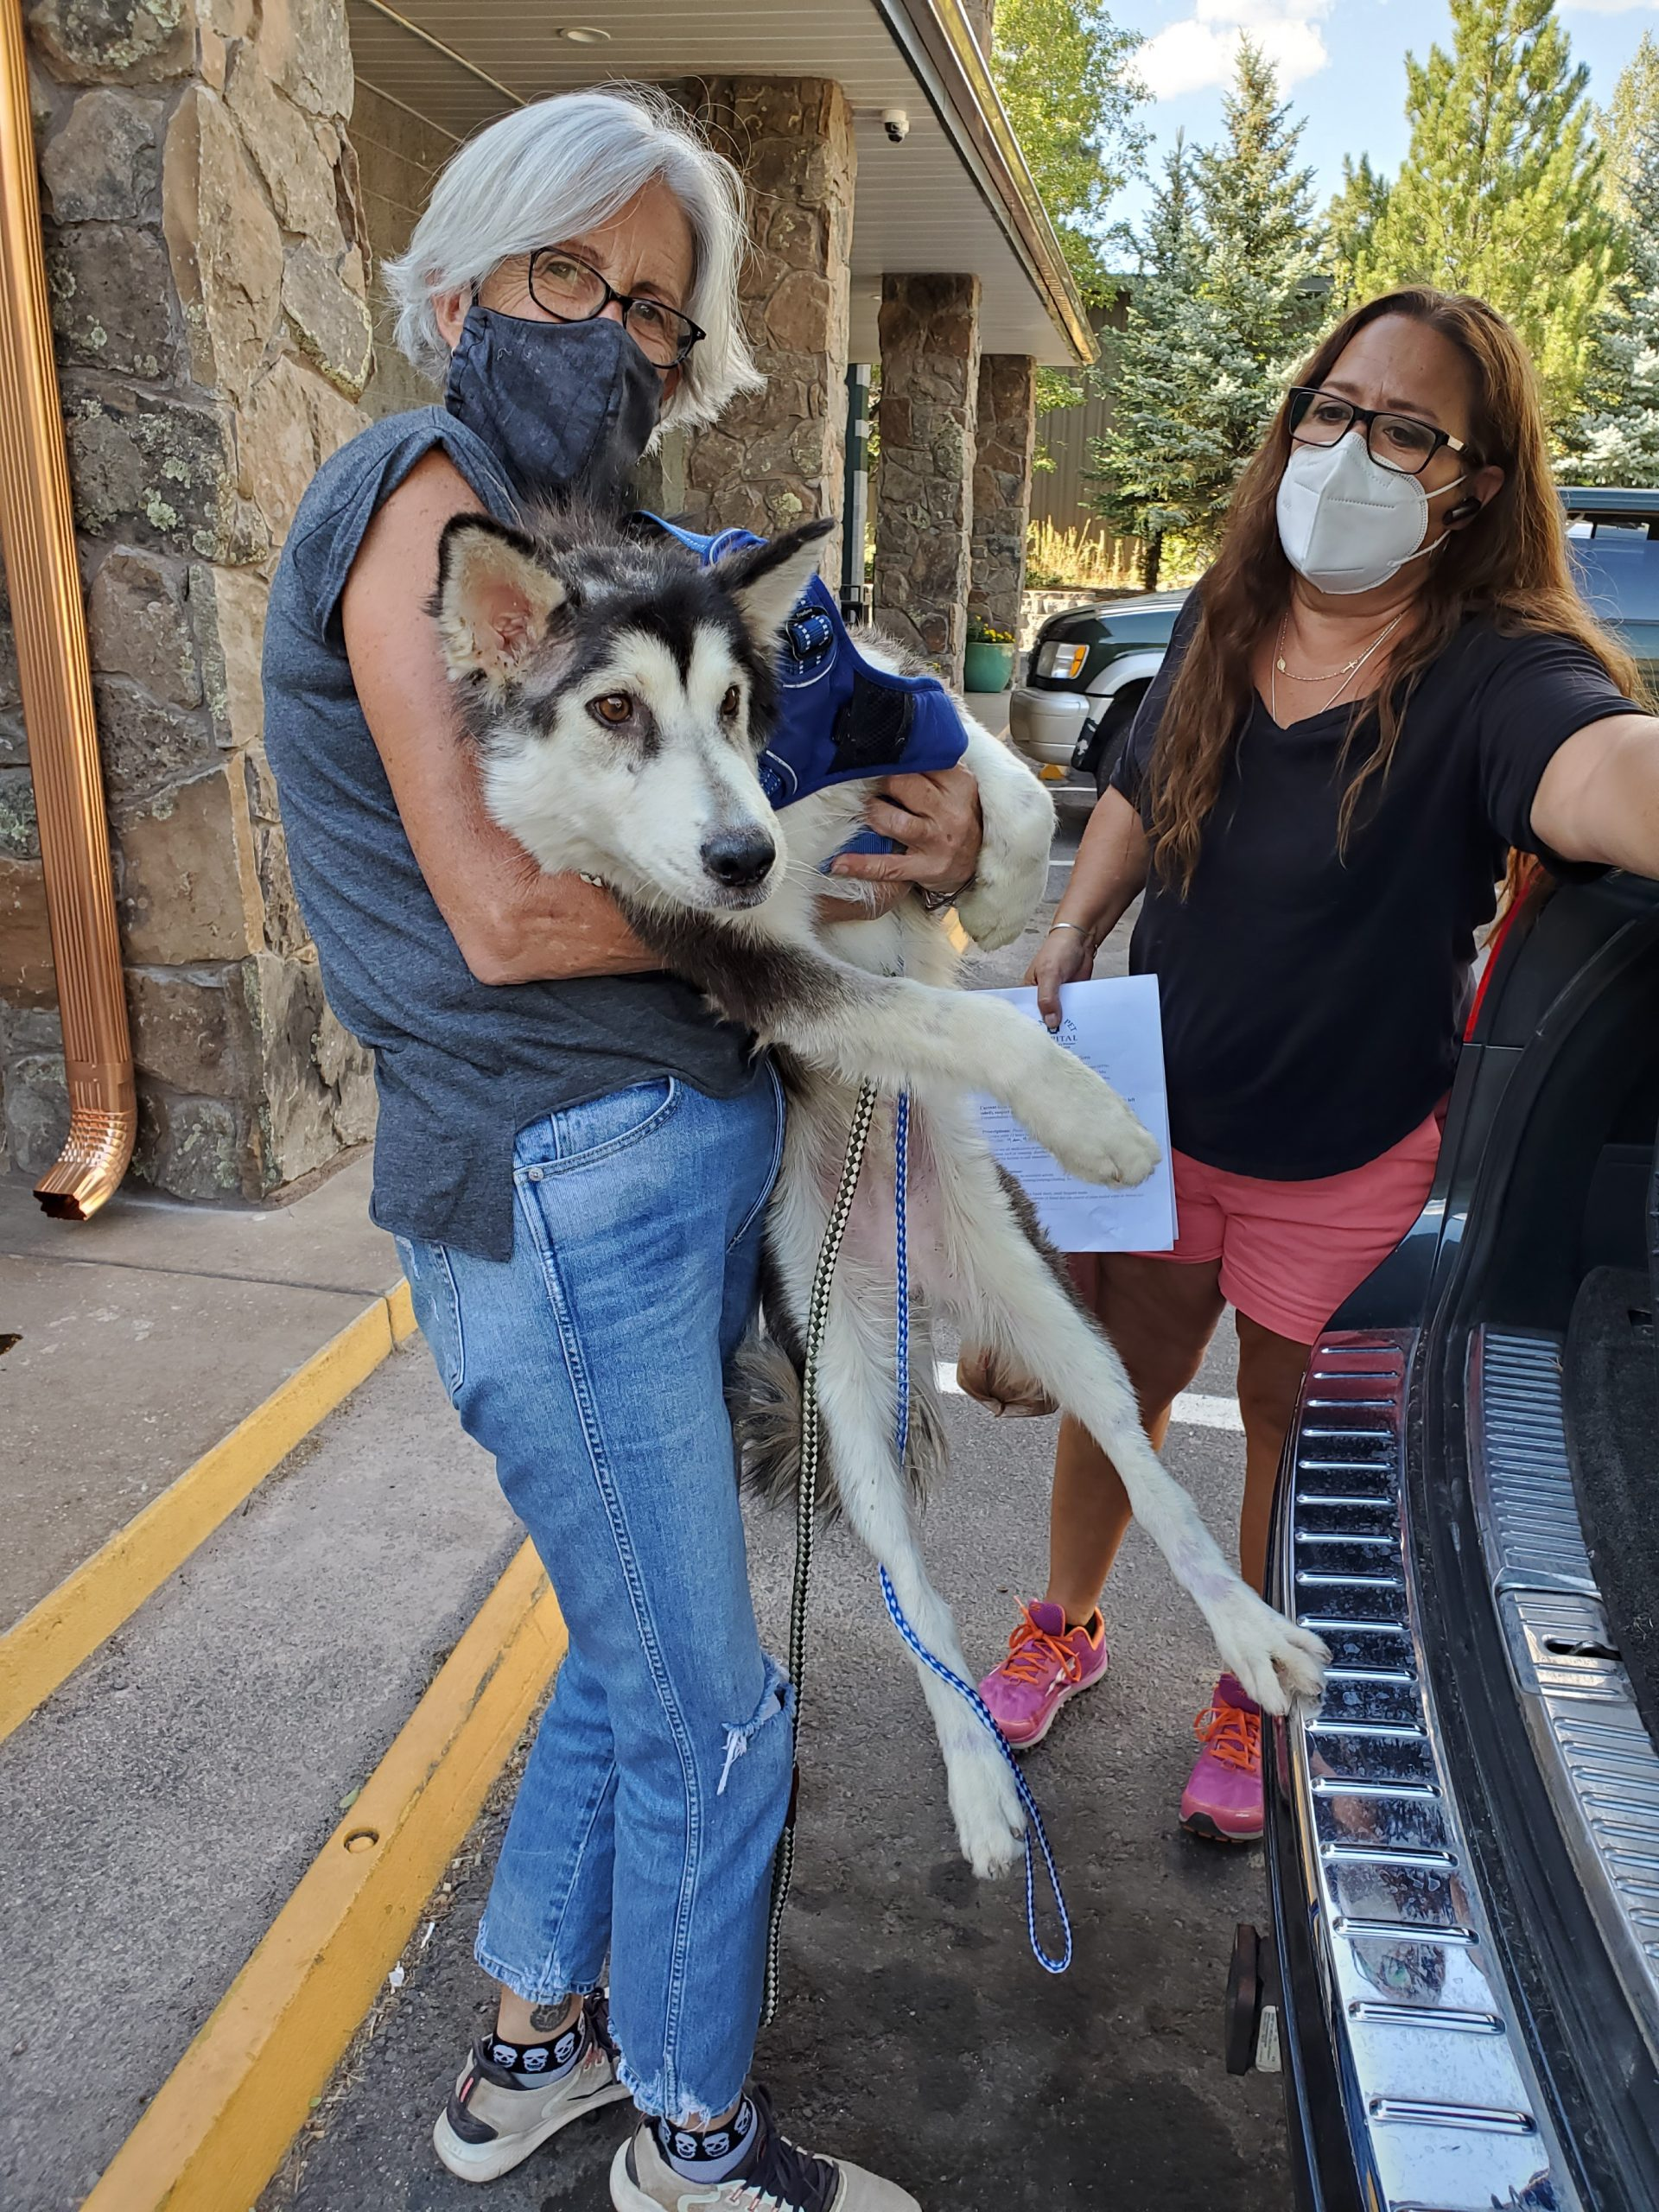 Mary Martin, from Best Friends Animal Society, and Deborah Franklin, from Tuba City Humane Society, picking up Togo from Canyon Pet Hospital in Flagstaff